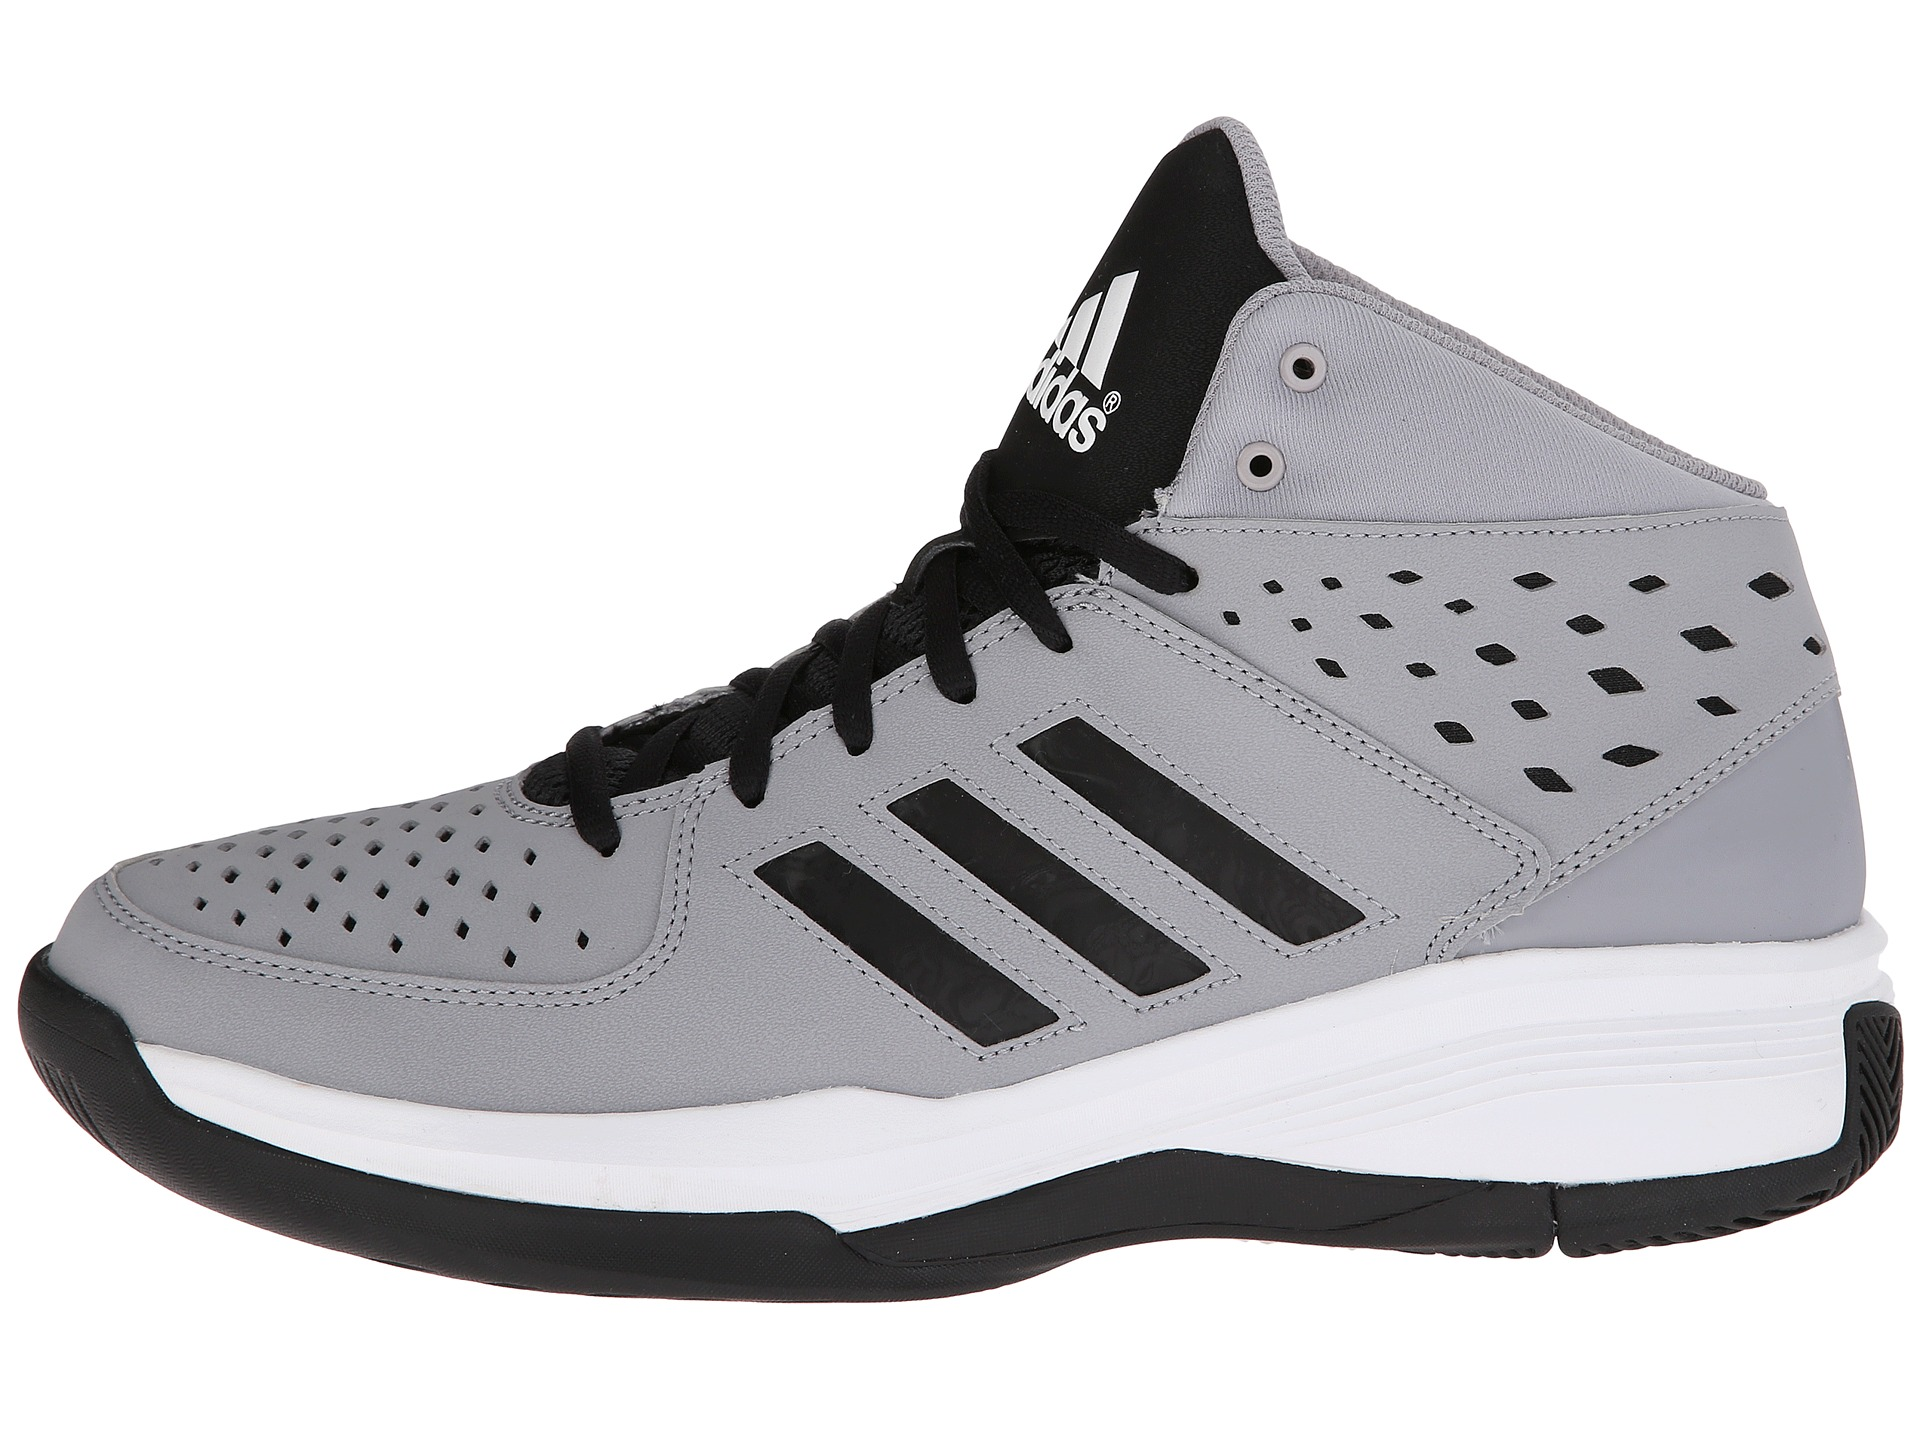 Adidas Court Fury Light OnixCore BlackFTWR White